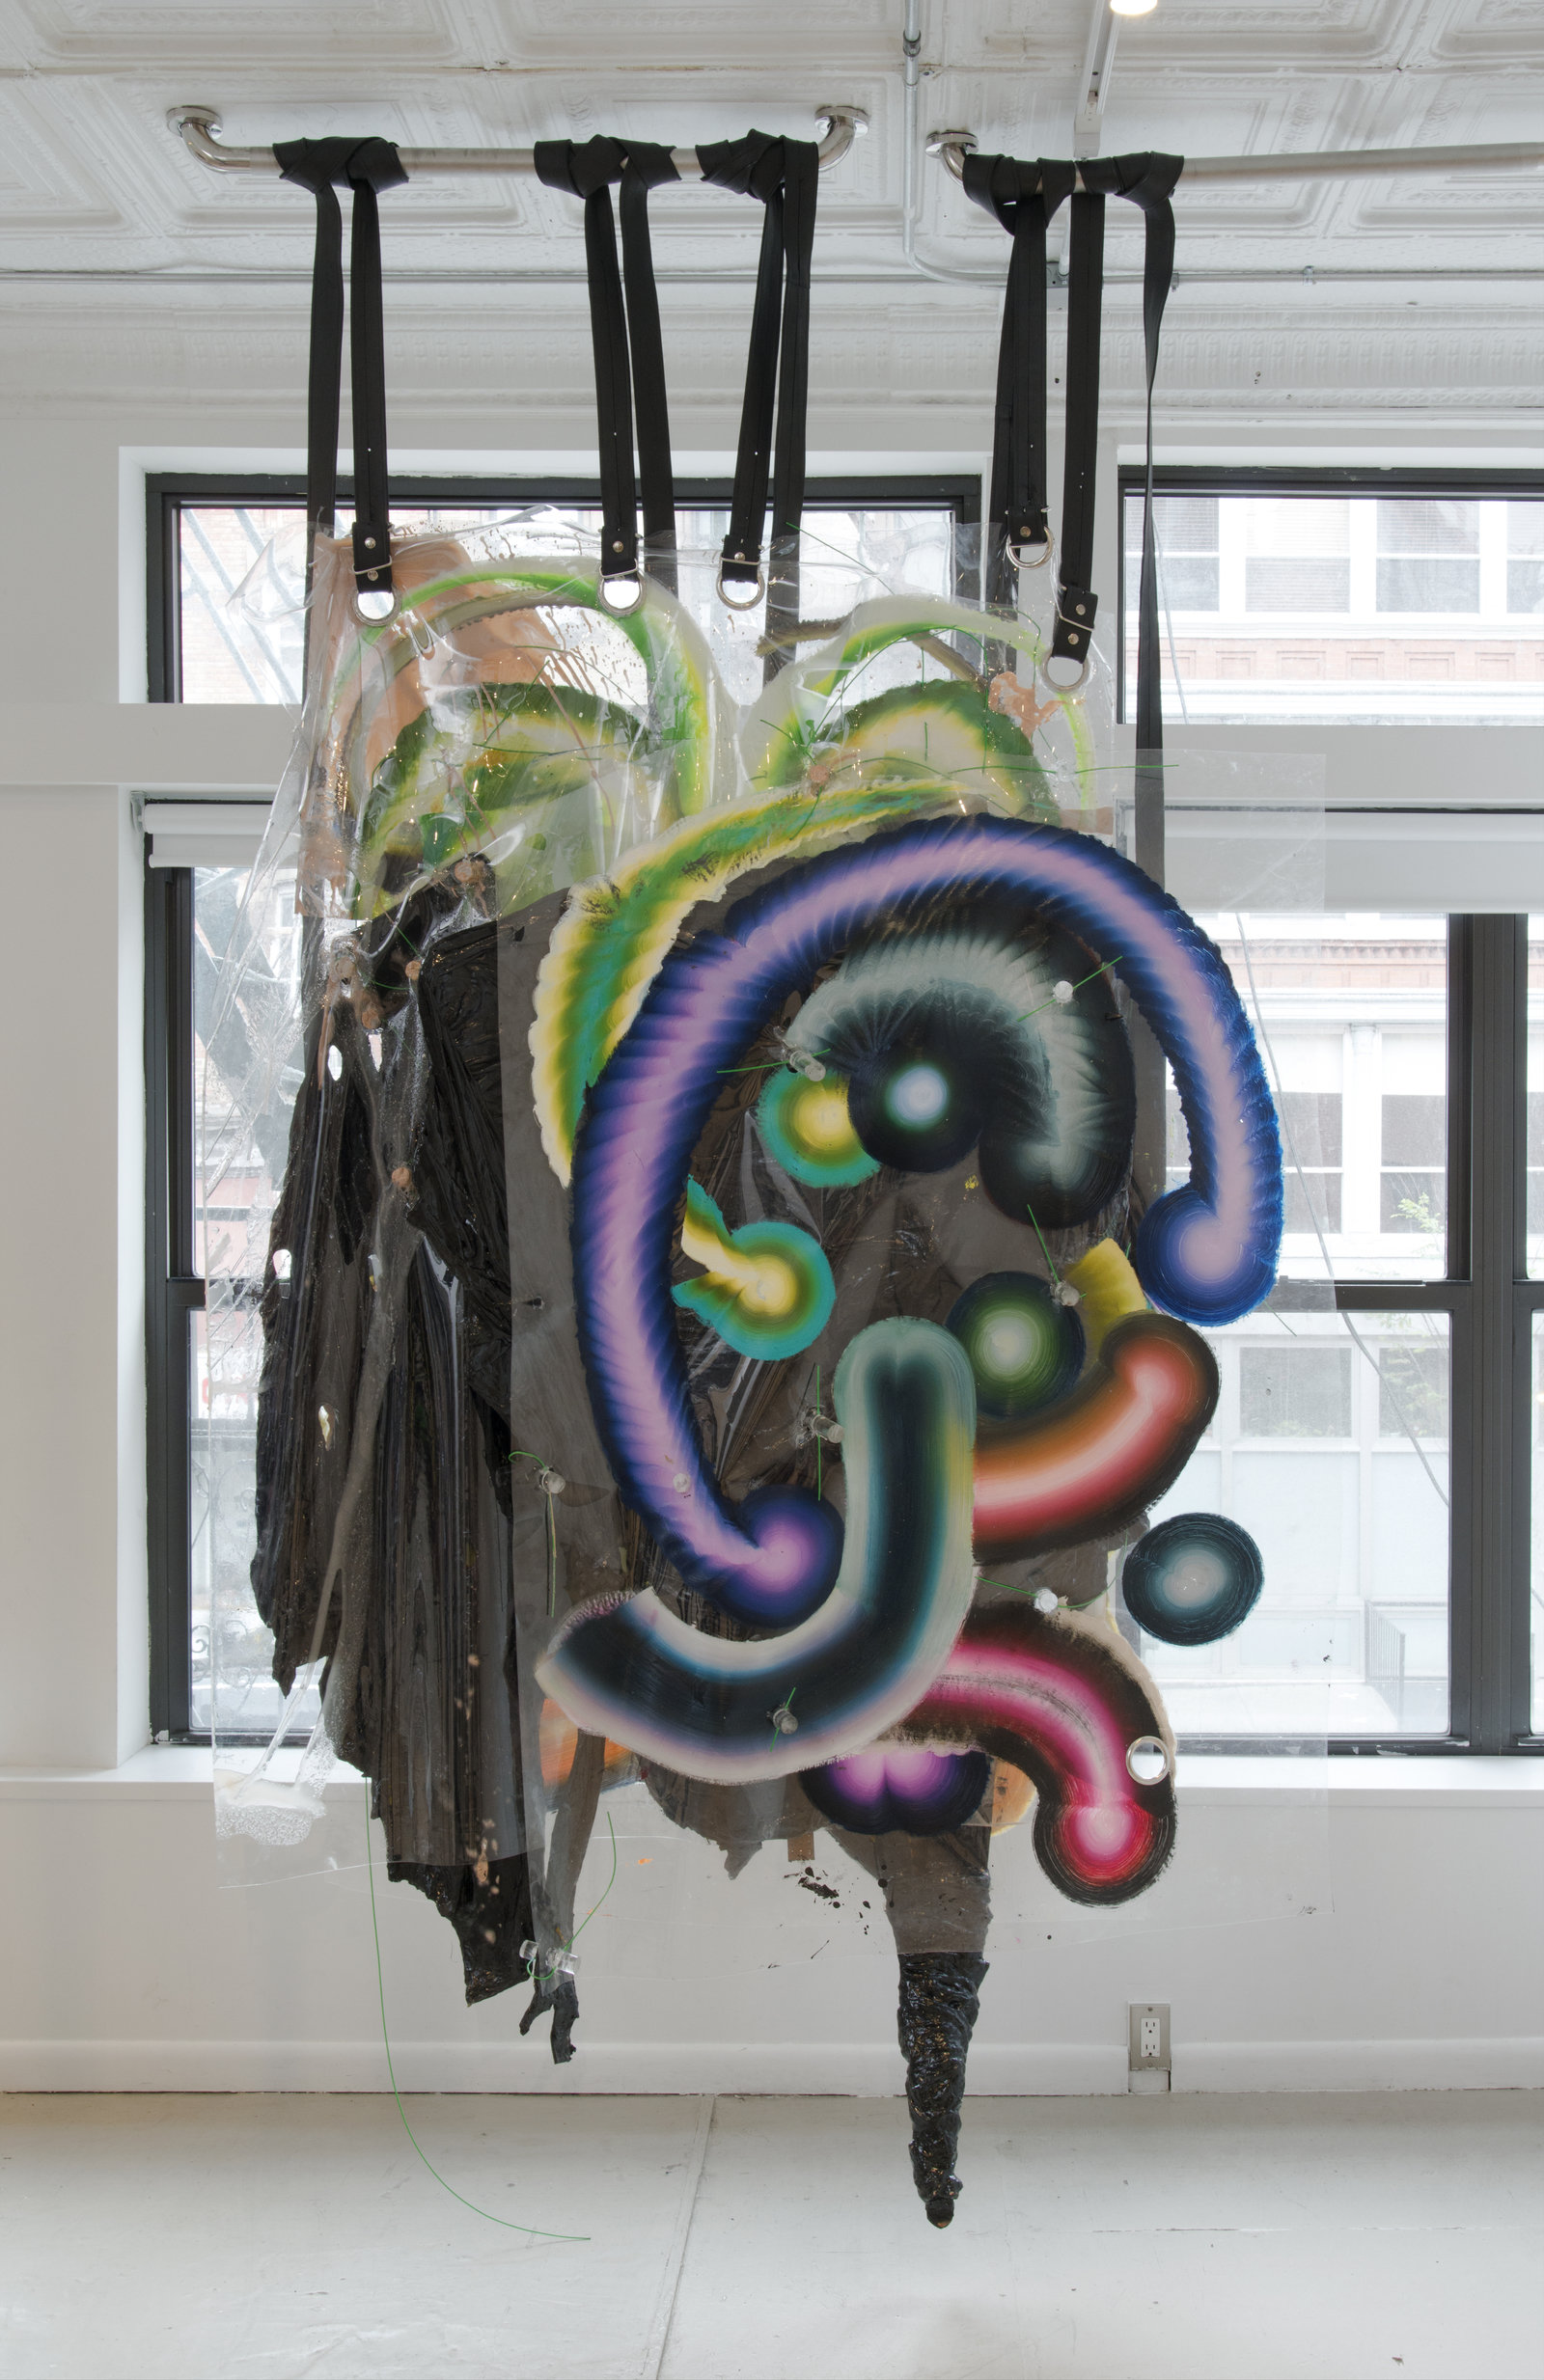 Kerstin Brätsch and Debo Eilers, S is for Sissy, 2013, Bodybag Meo, installation view KAYA III, 47 Canal